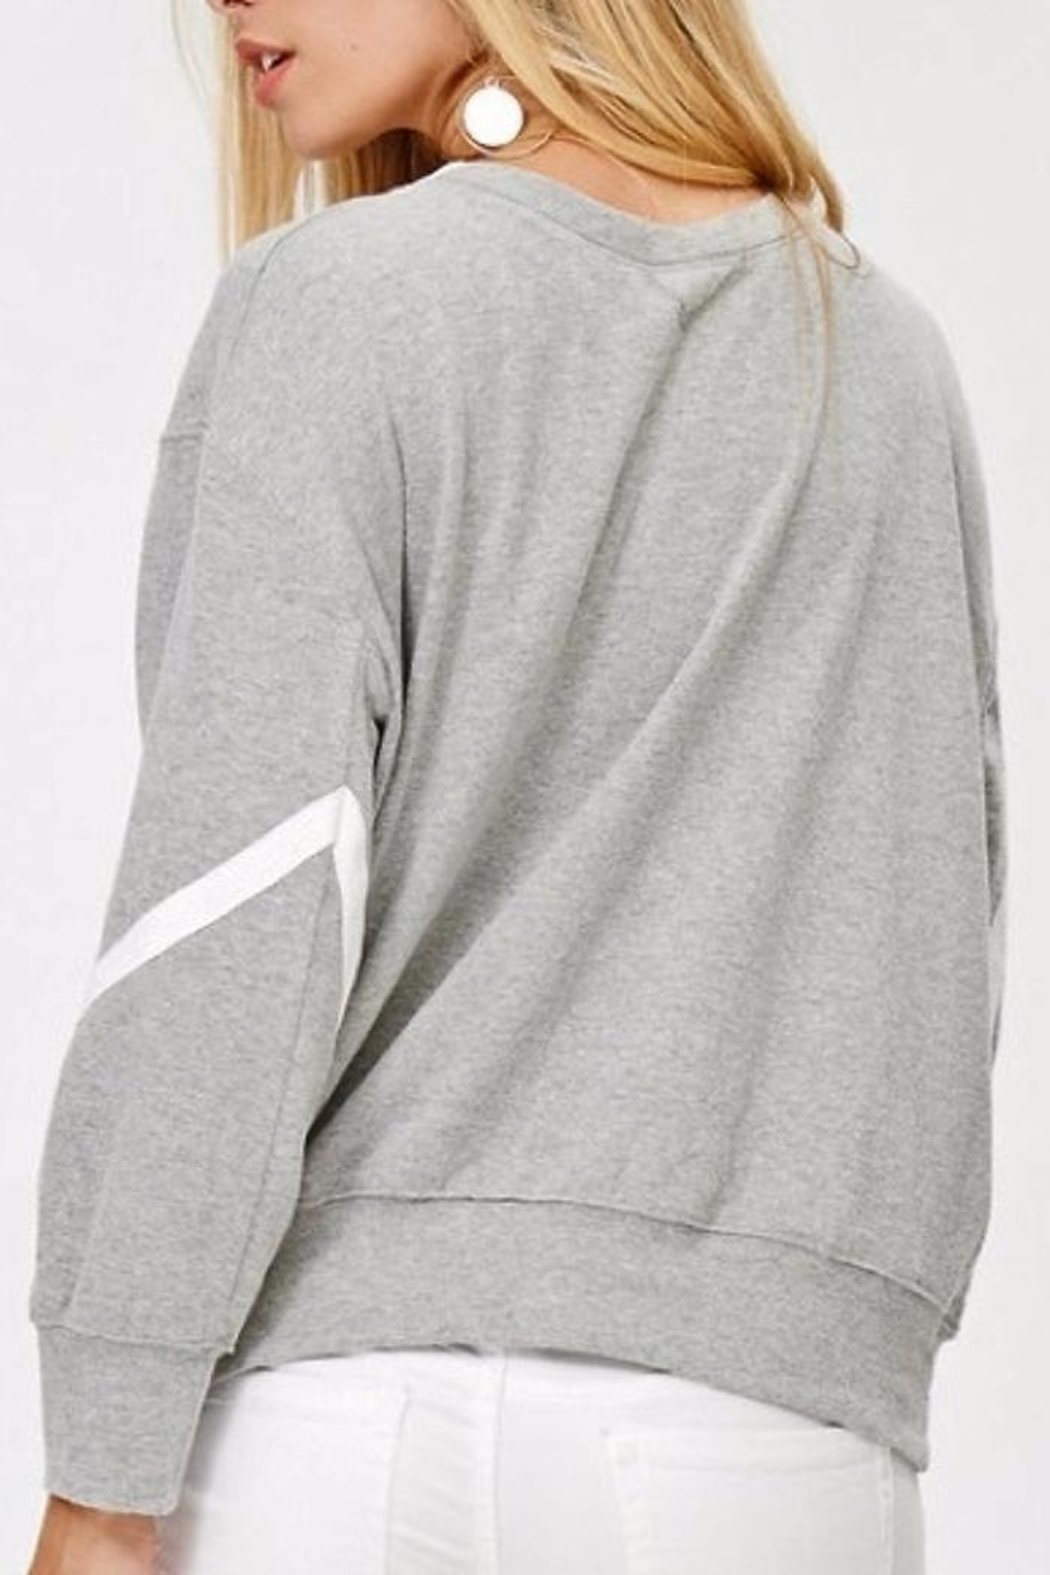 People Outfitter Reversible Sweatshirt - Side Cropped Image